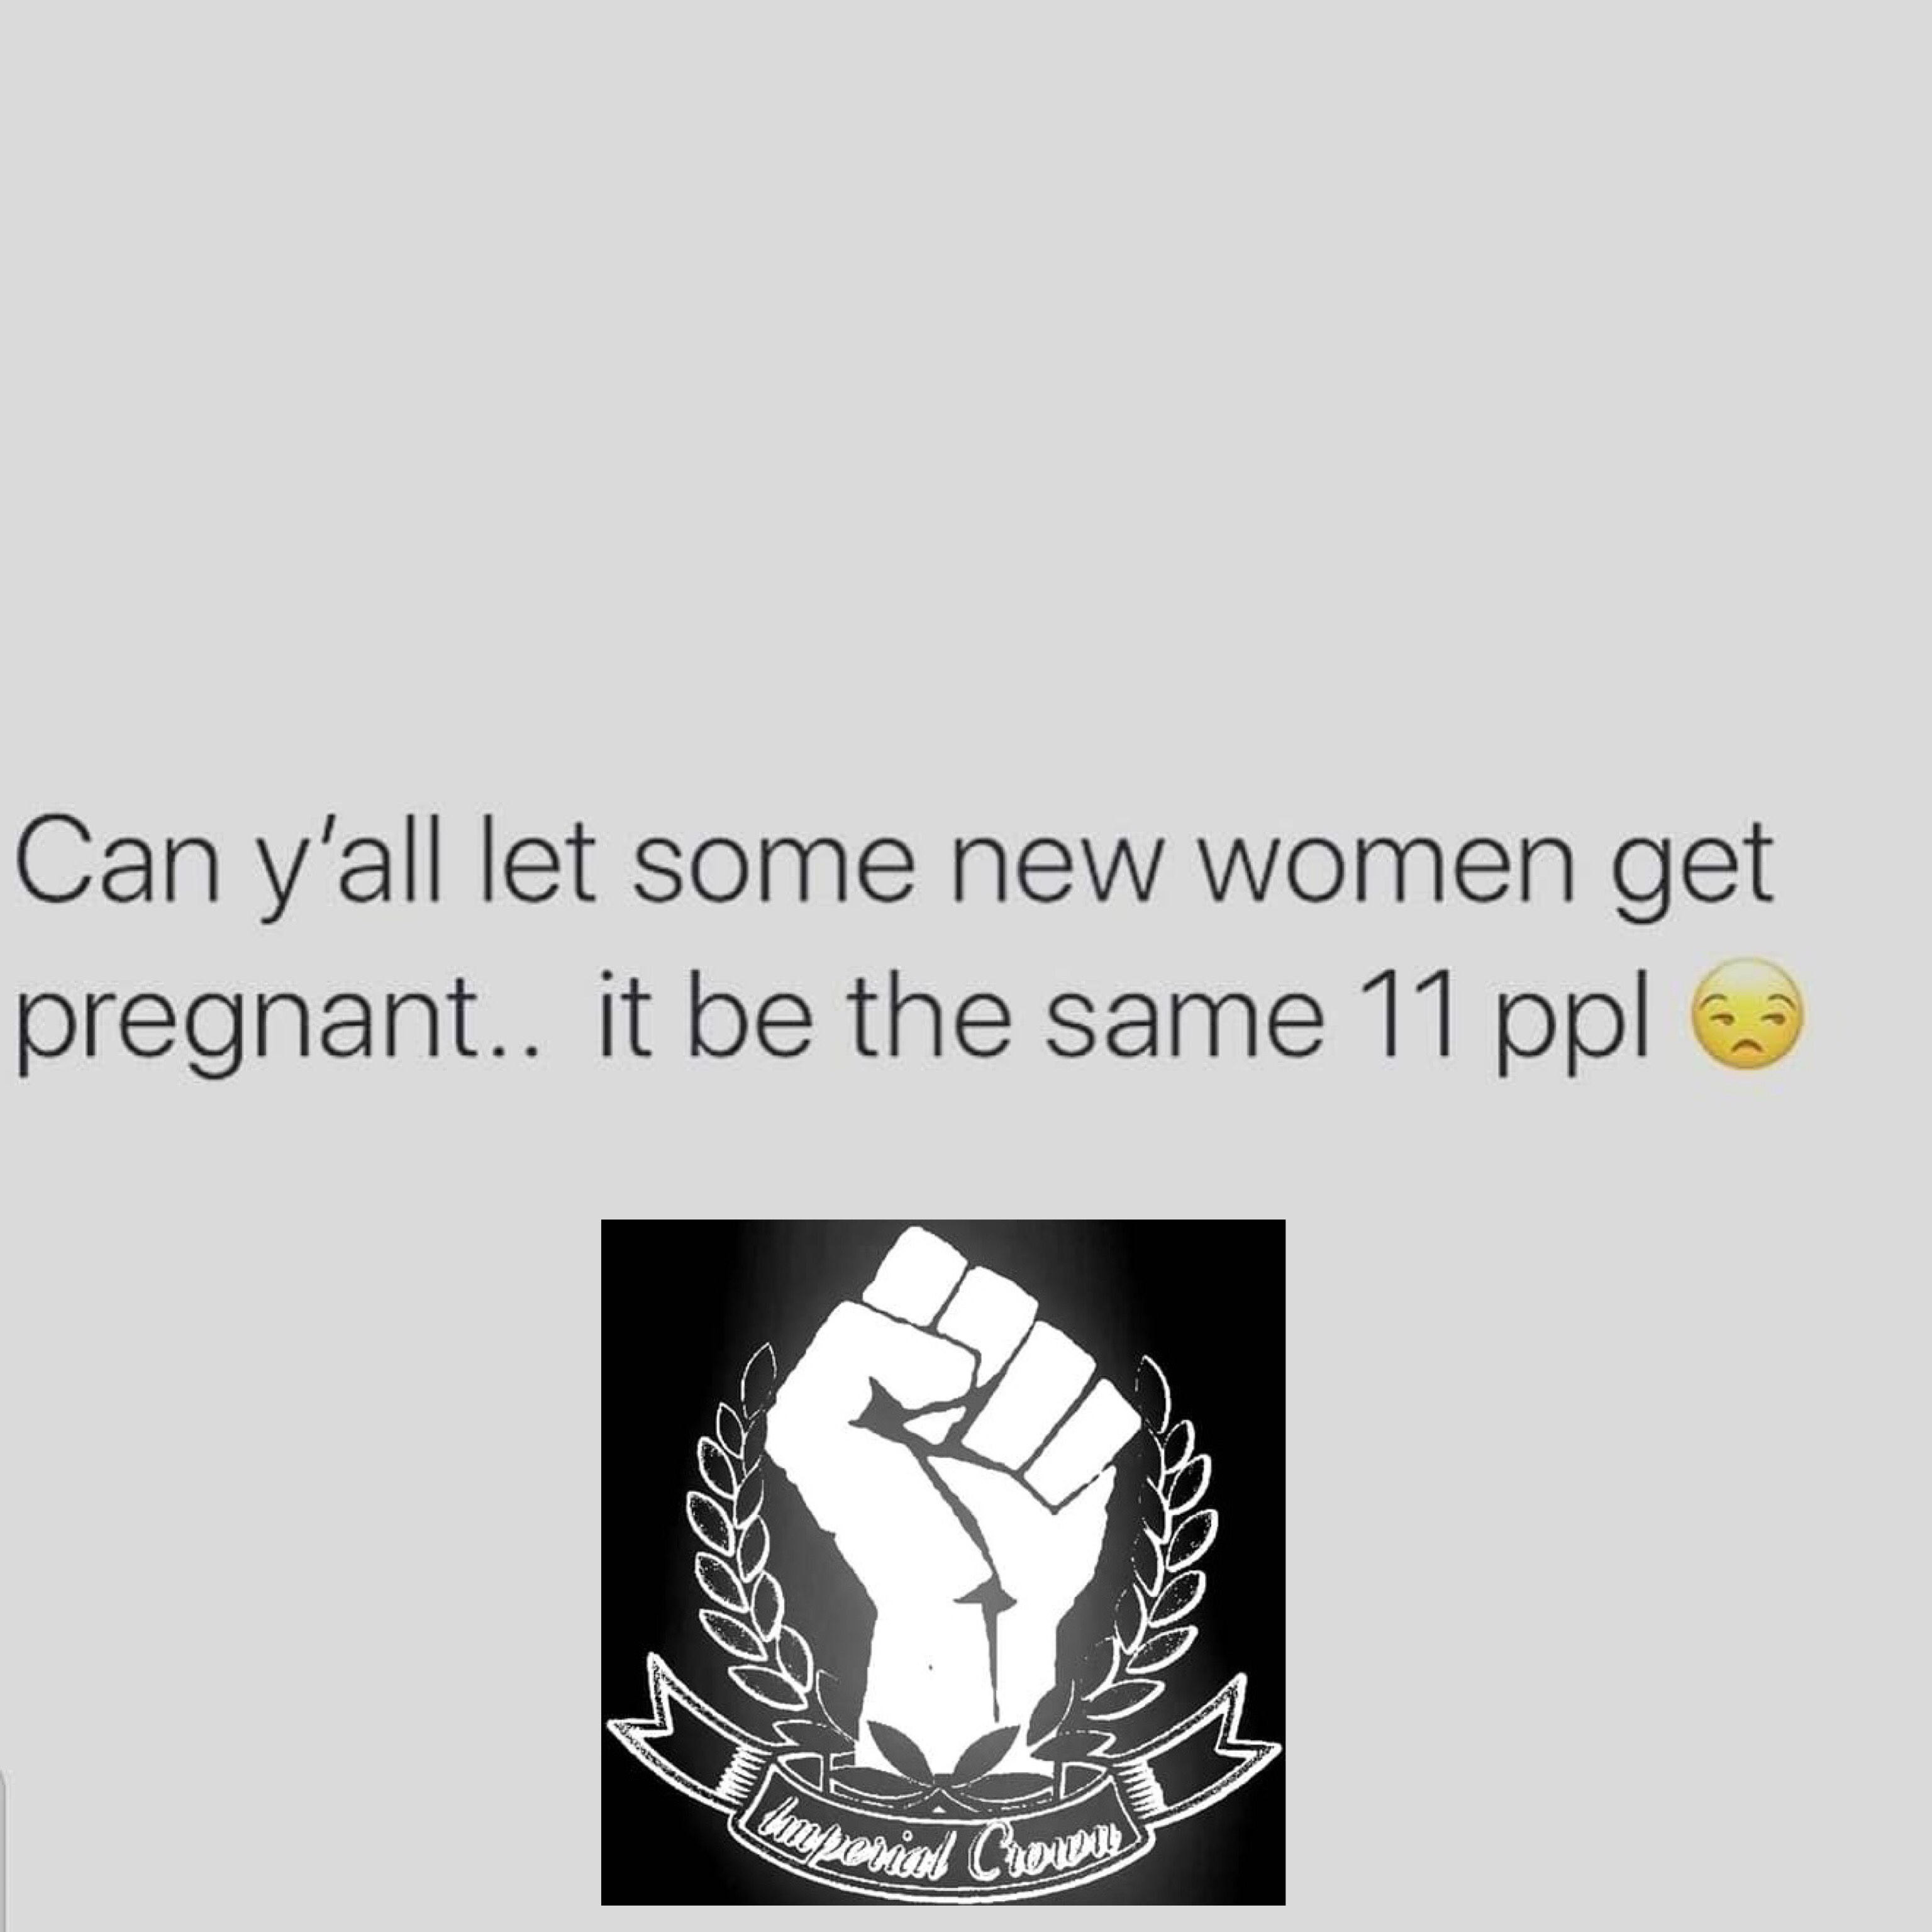 Can y'all let some new women get pregnant it be the same 11 ppl